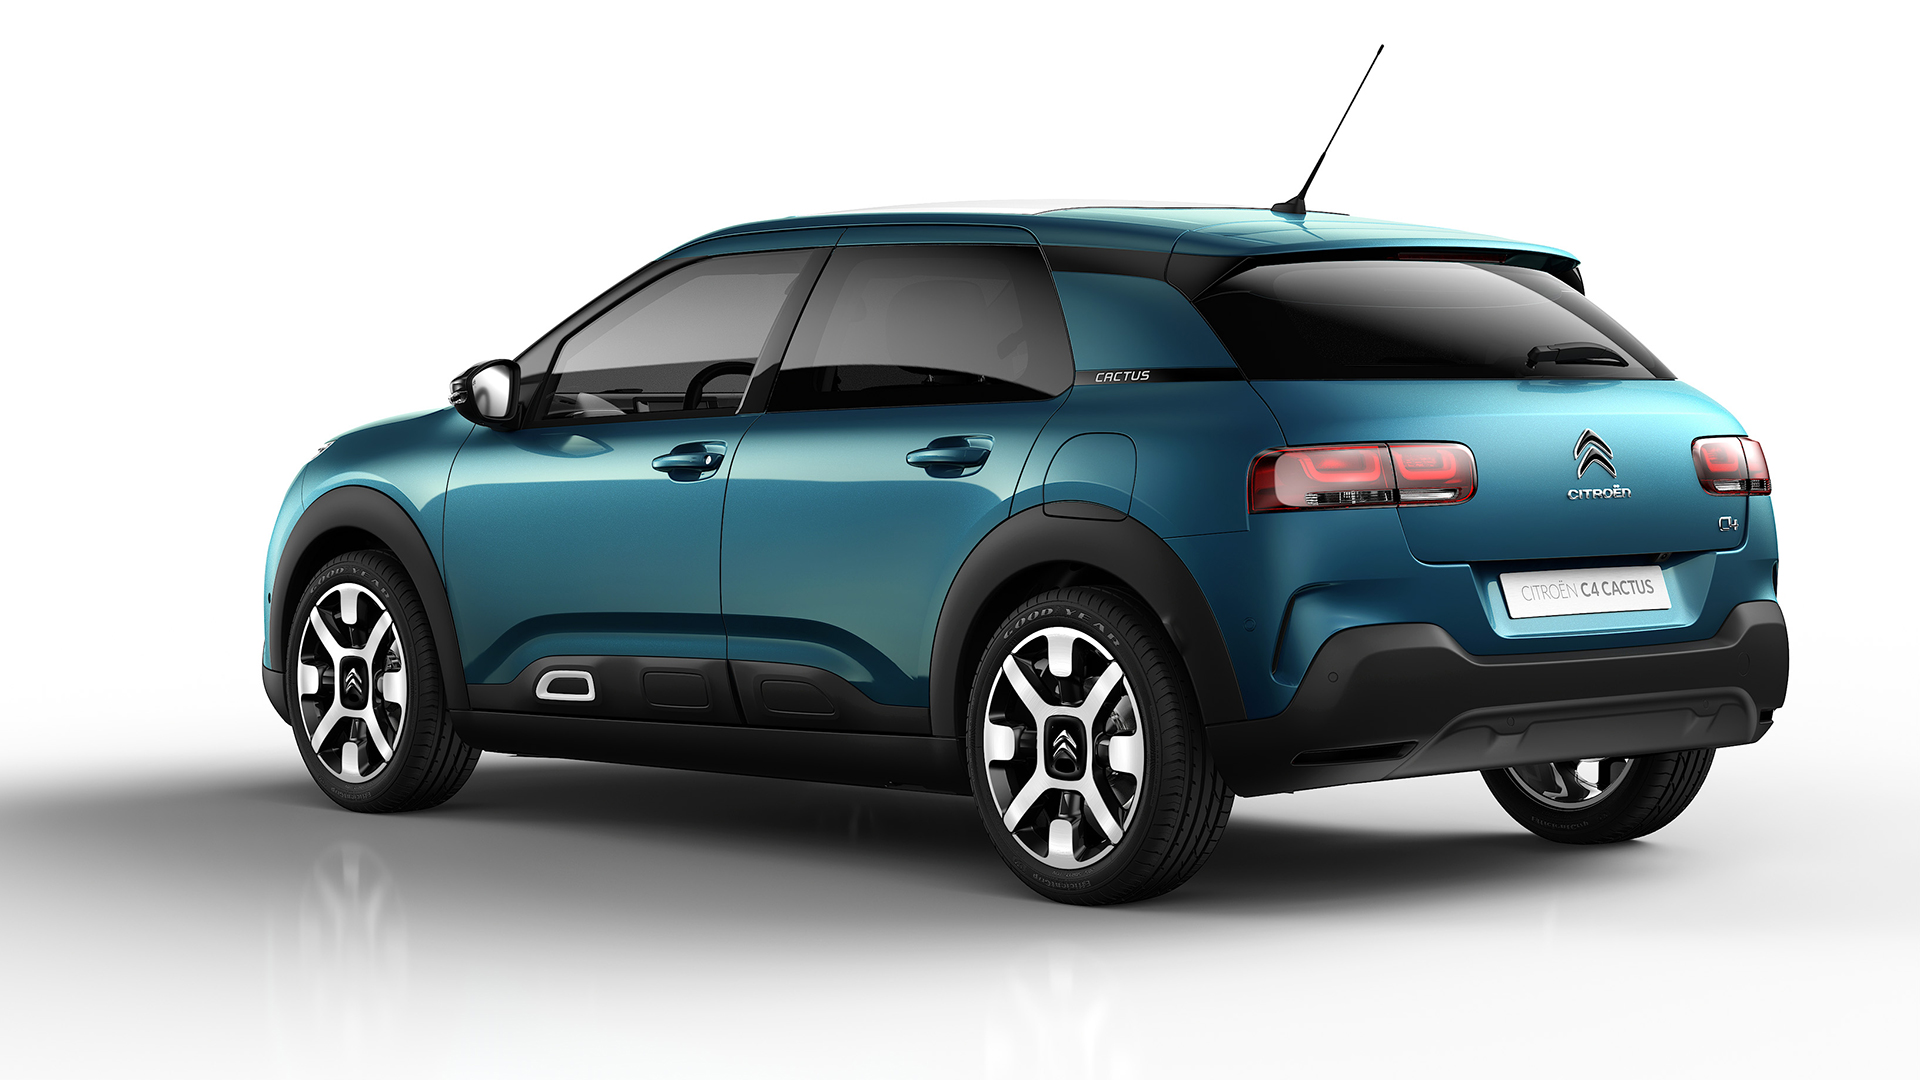 Citroen Used Cars For Sale On Auto Trader Uk